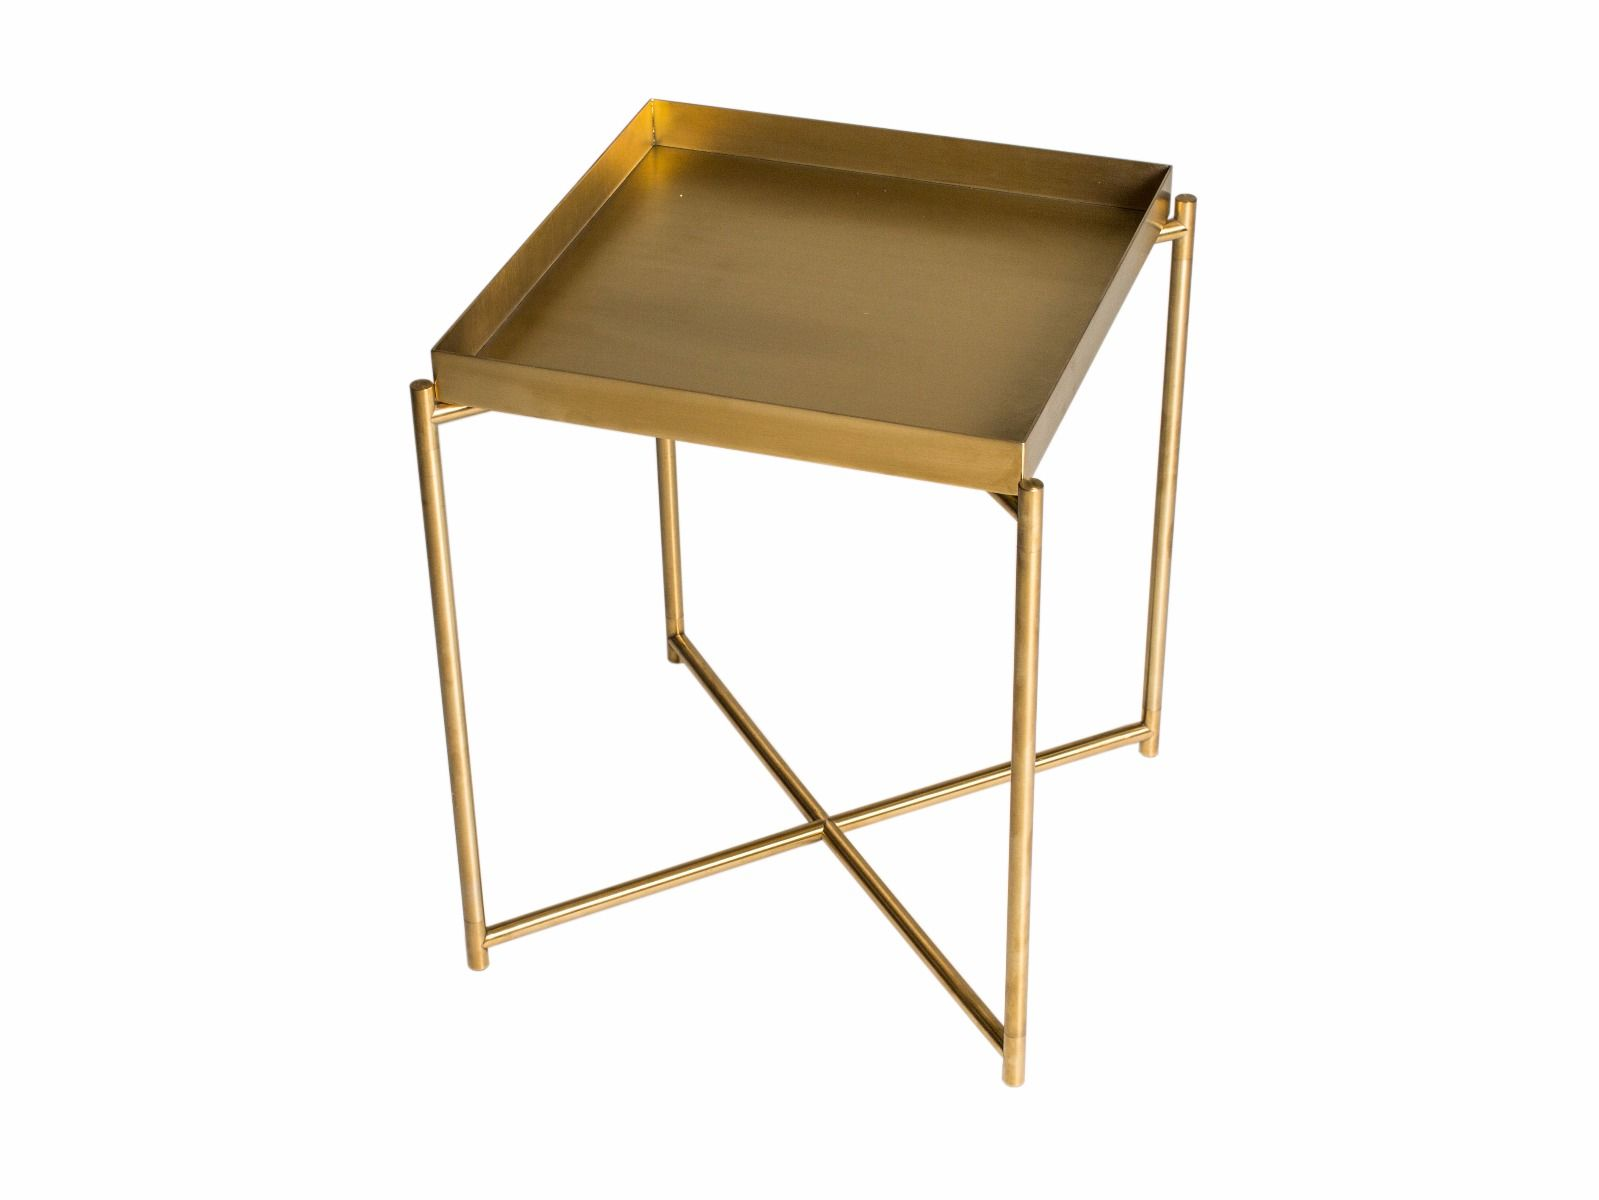 square tray top side table brass with frame collection iris gillmorespace accent gillmore space usb lamp nautical bathroom ideas glass silver buffet server resin patio umbrella